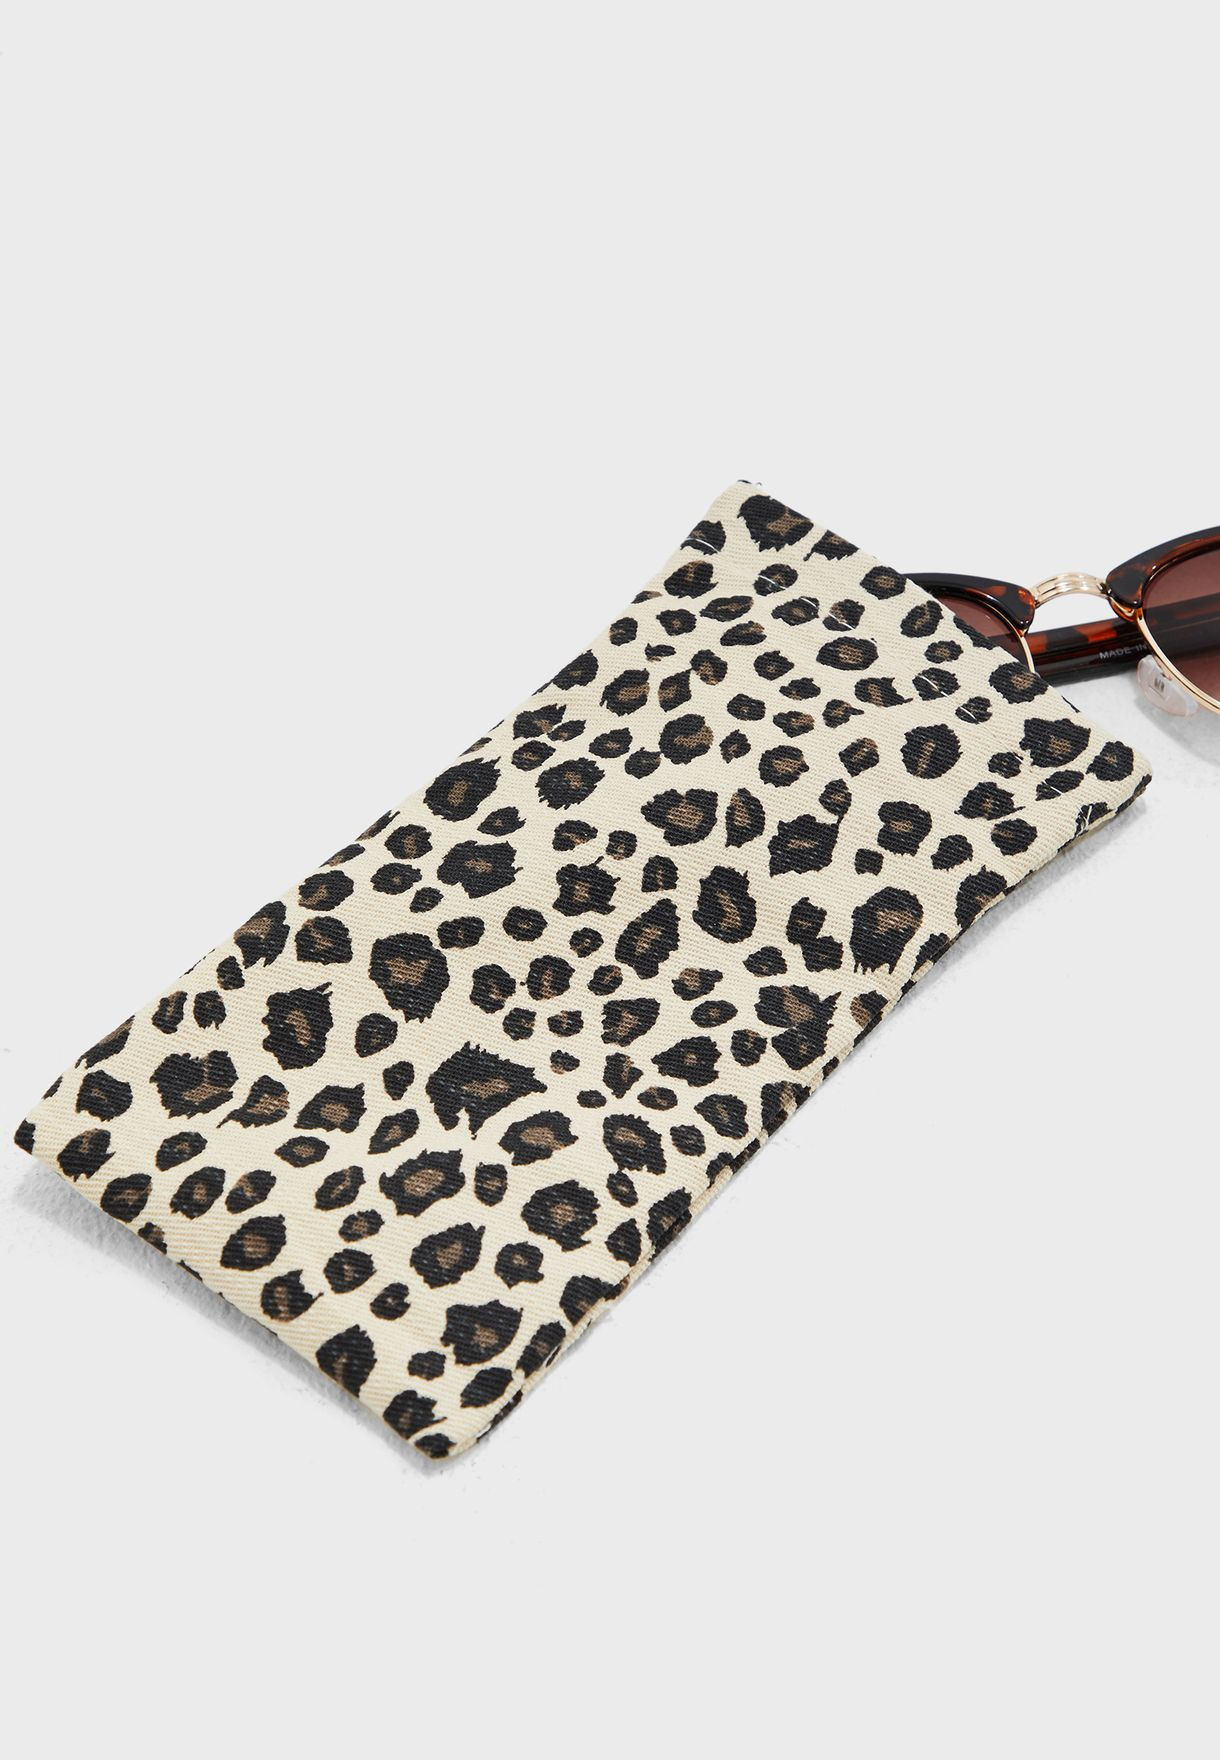 Leopard Print Sunglasses Case